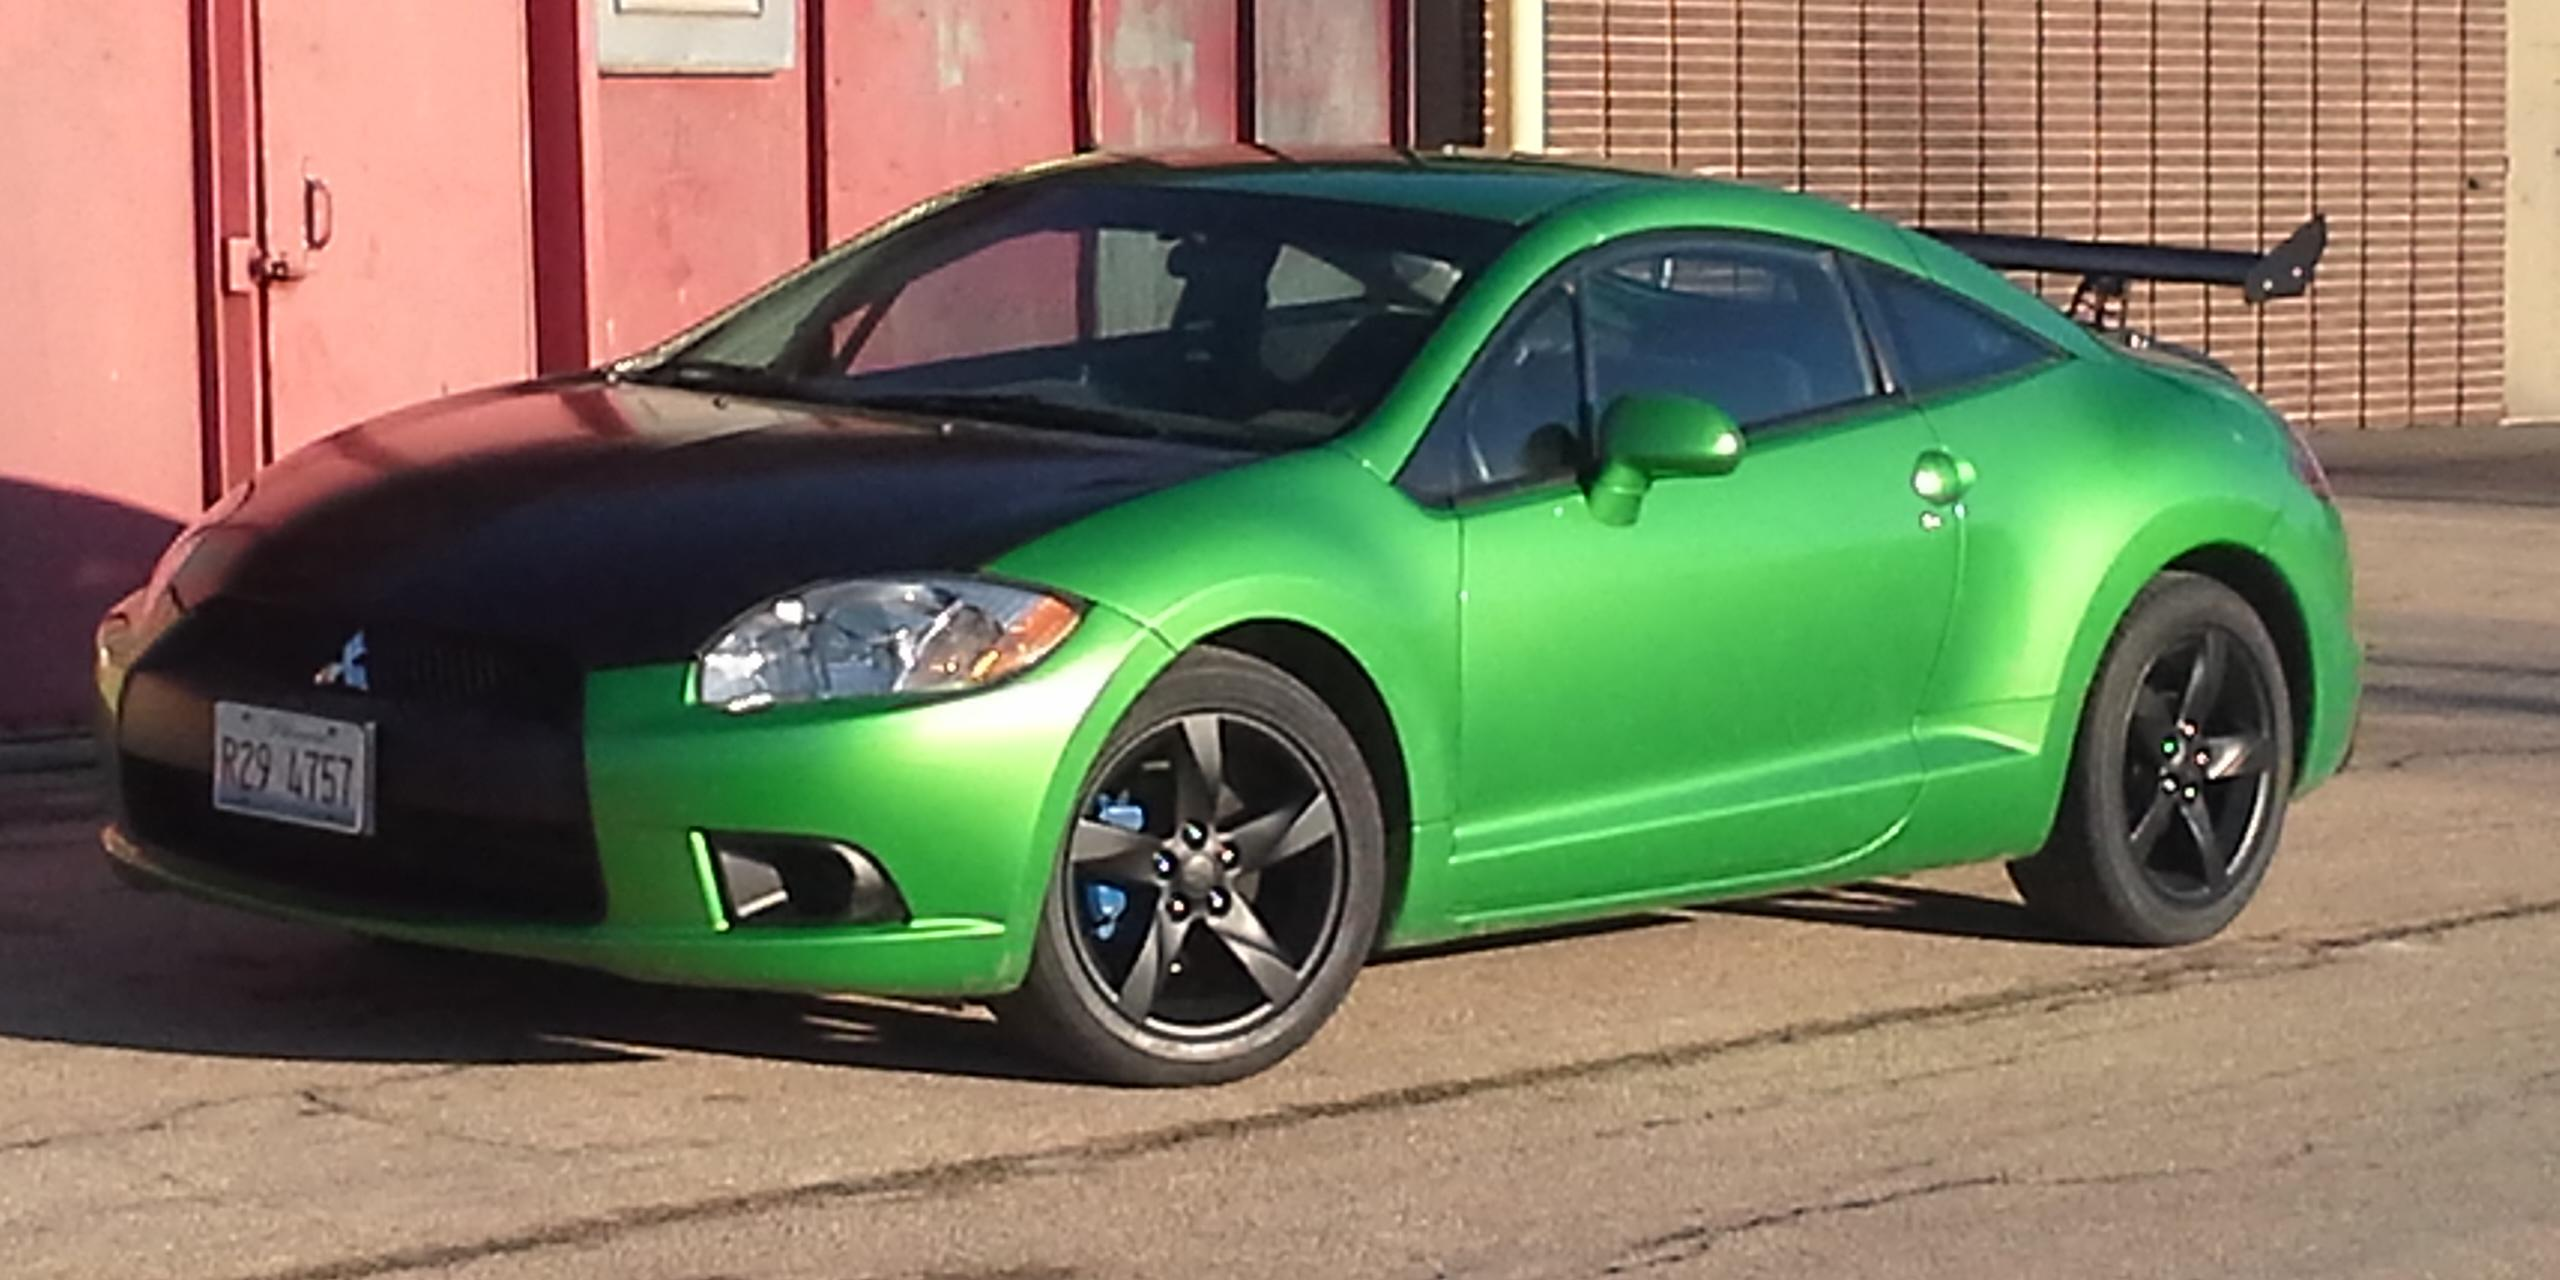 Hunter3825 2009 Mitsubishi Eclipse